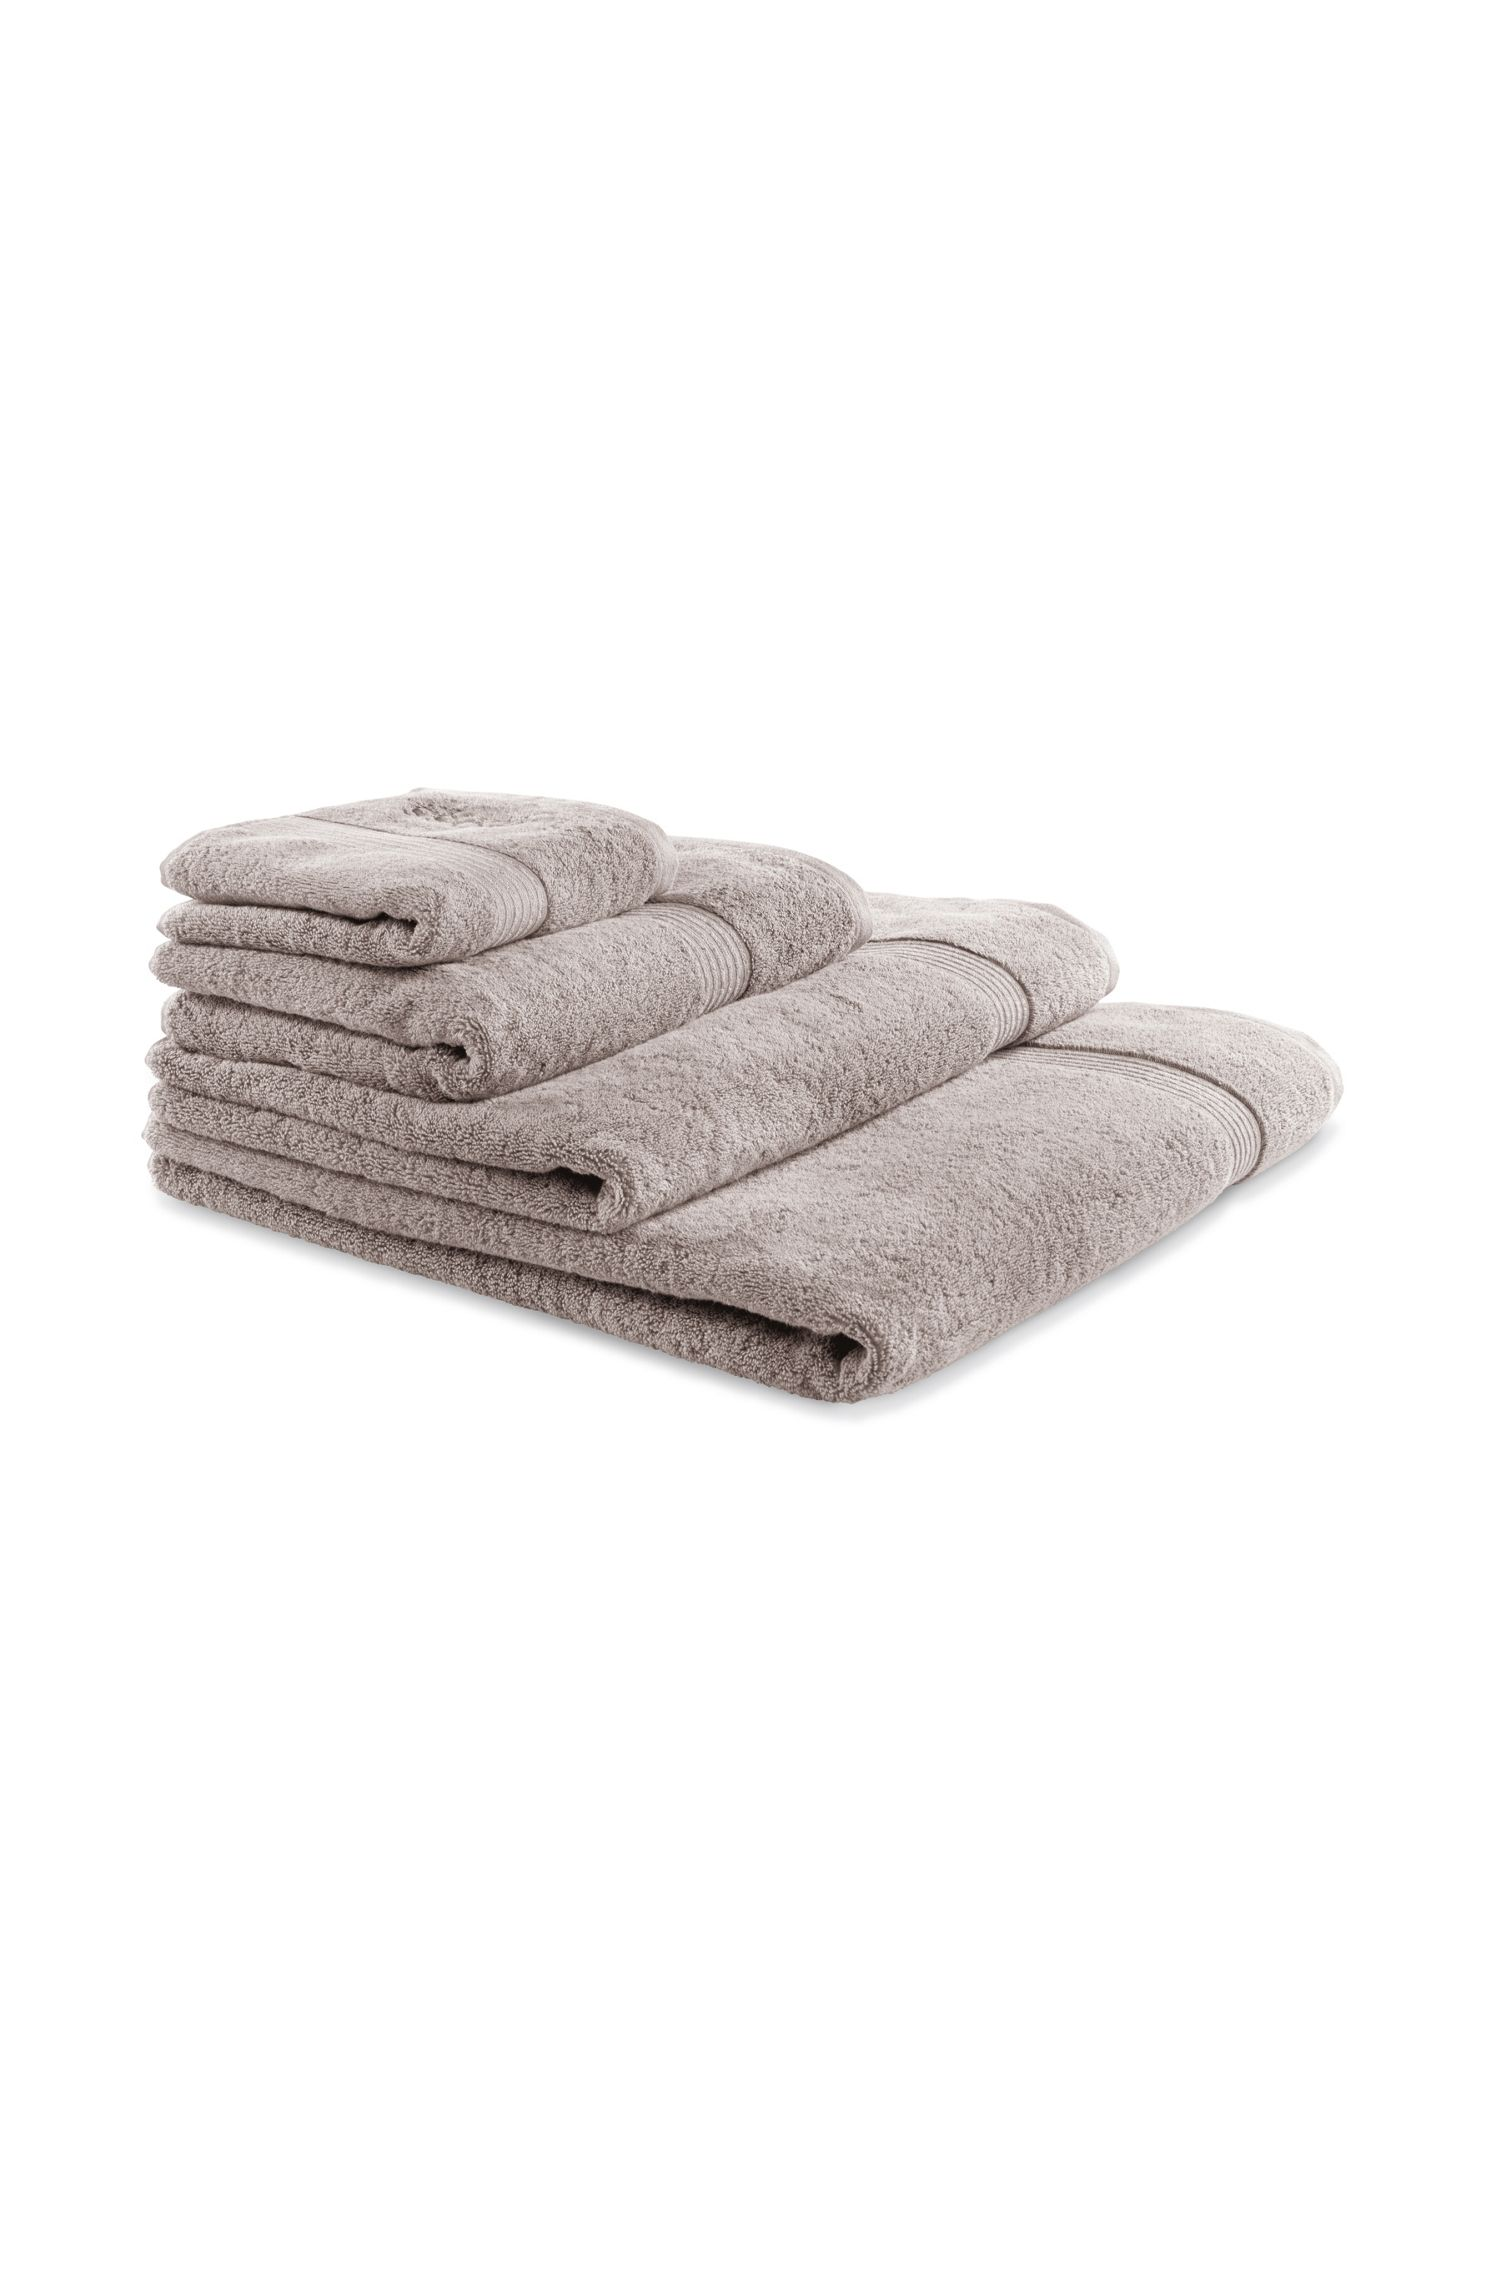 Guest towel in combed Aegean cotton with ribbed border